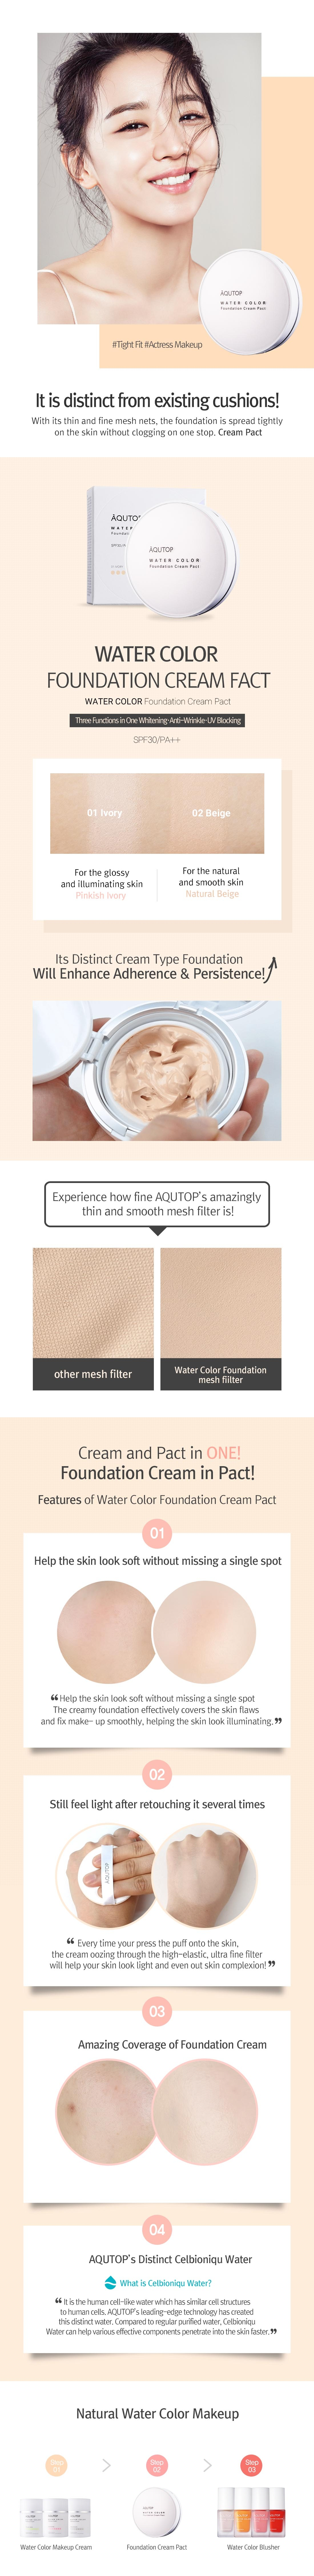 buy aqutop water color foundation cream pact spf 30 pa online at